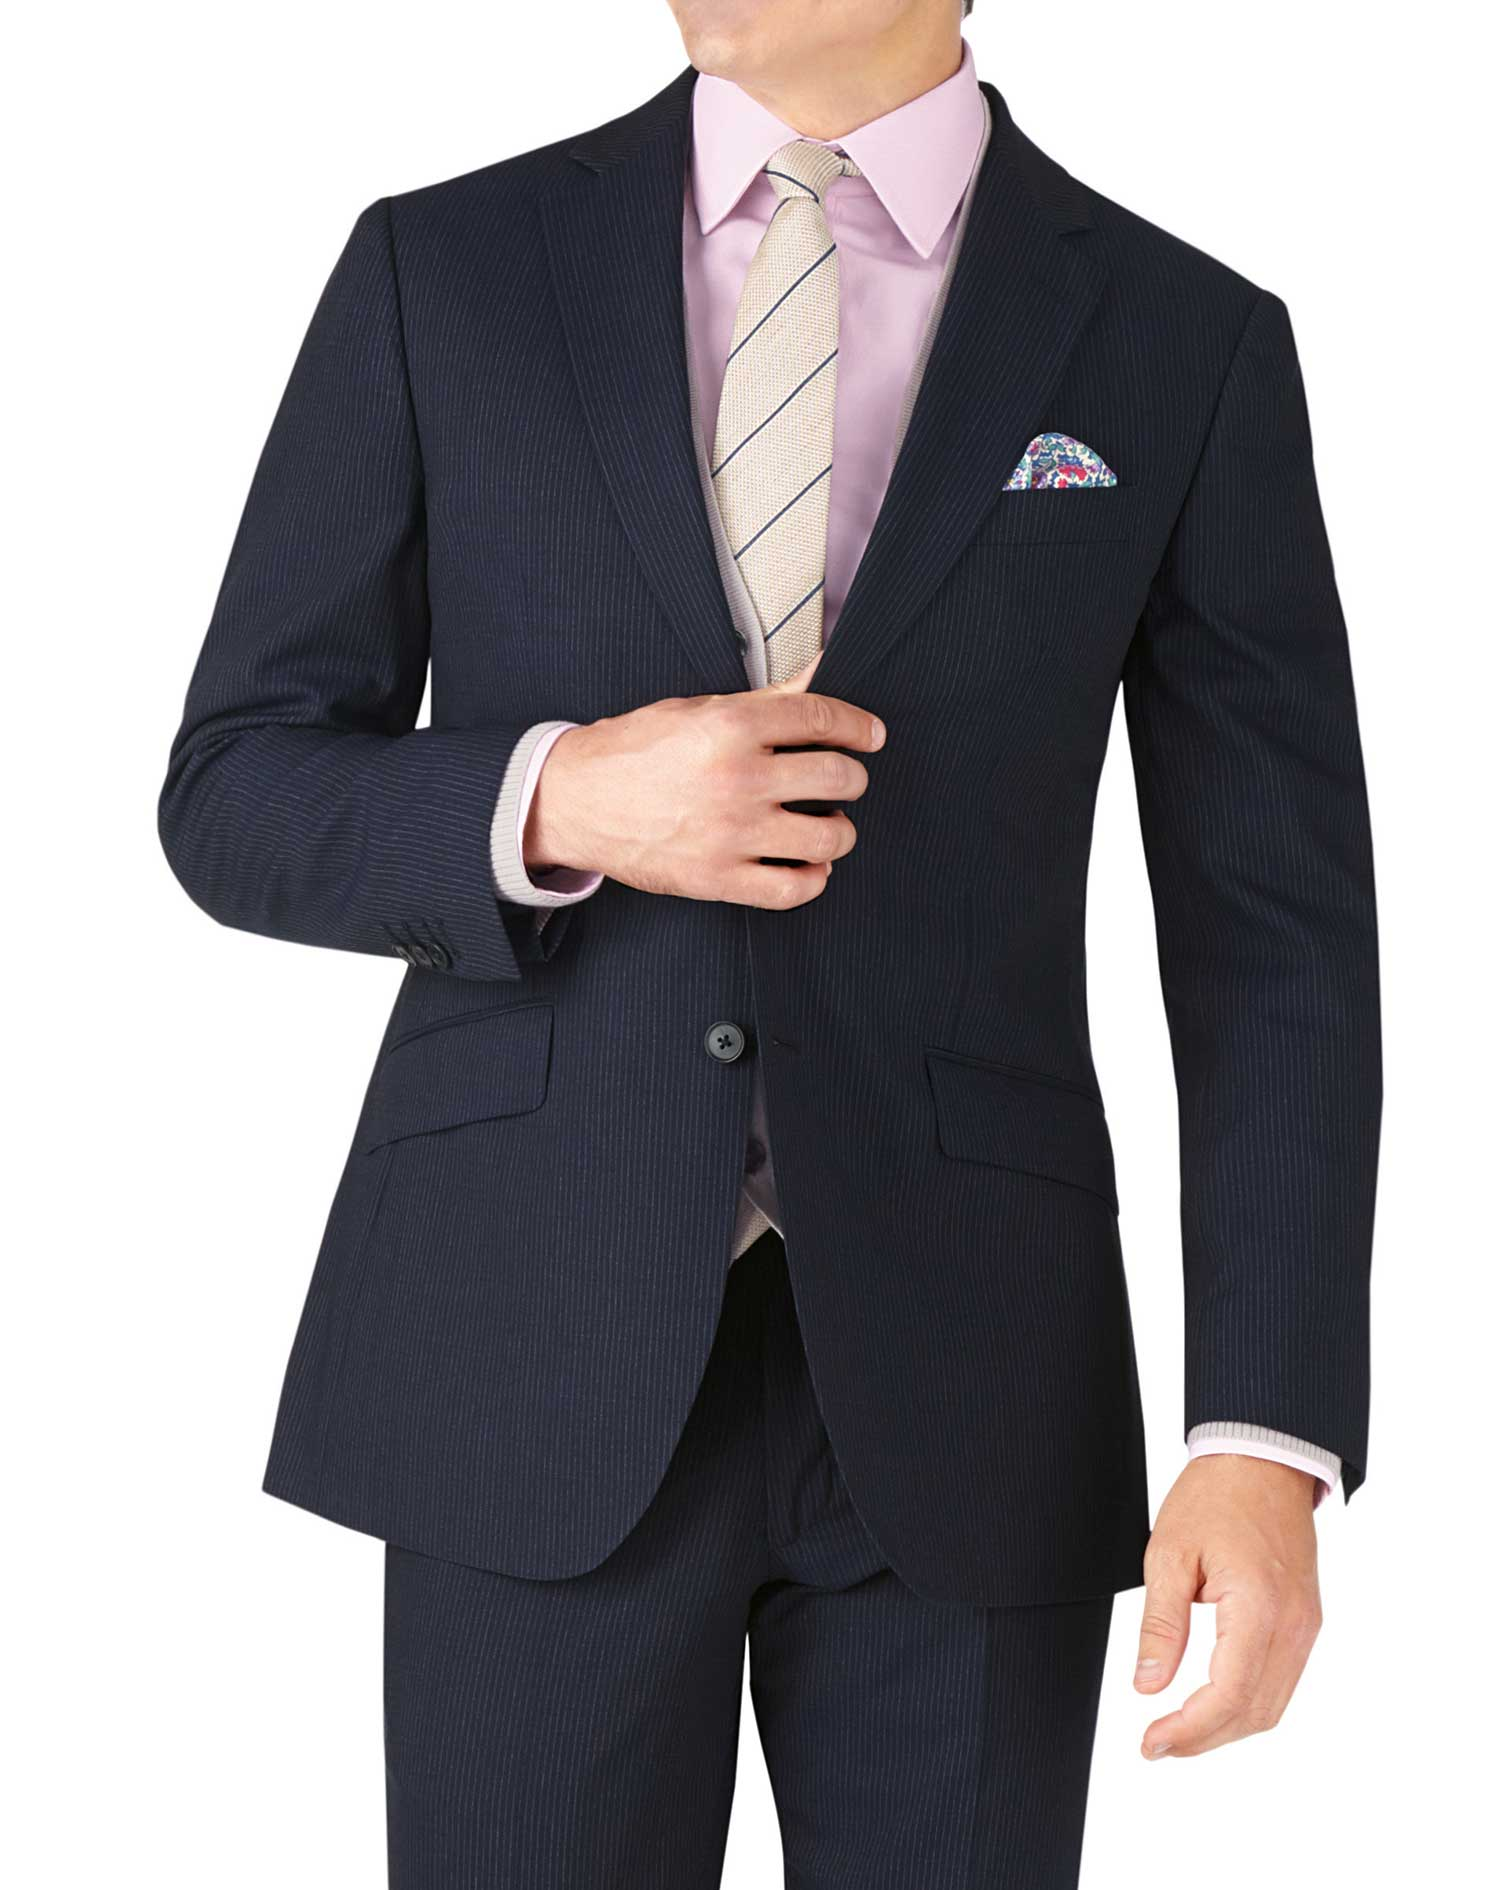 Navy Stripe Slim Fit Crepe Business Suit Wool Jacket Size 42 Long by Charles Tyrwhitt